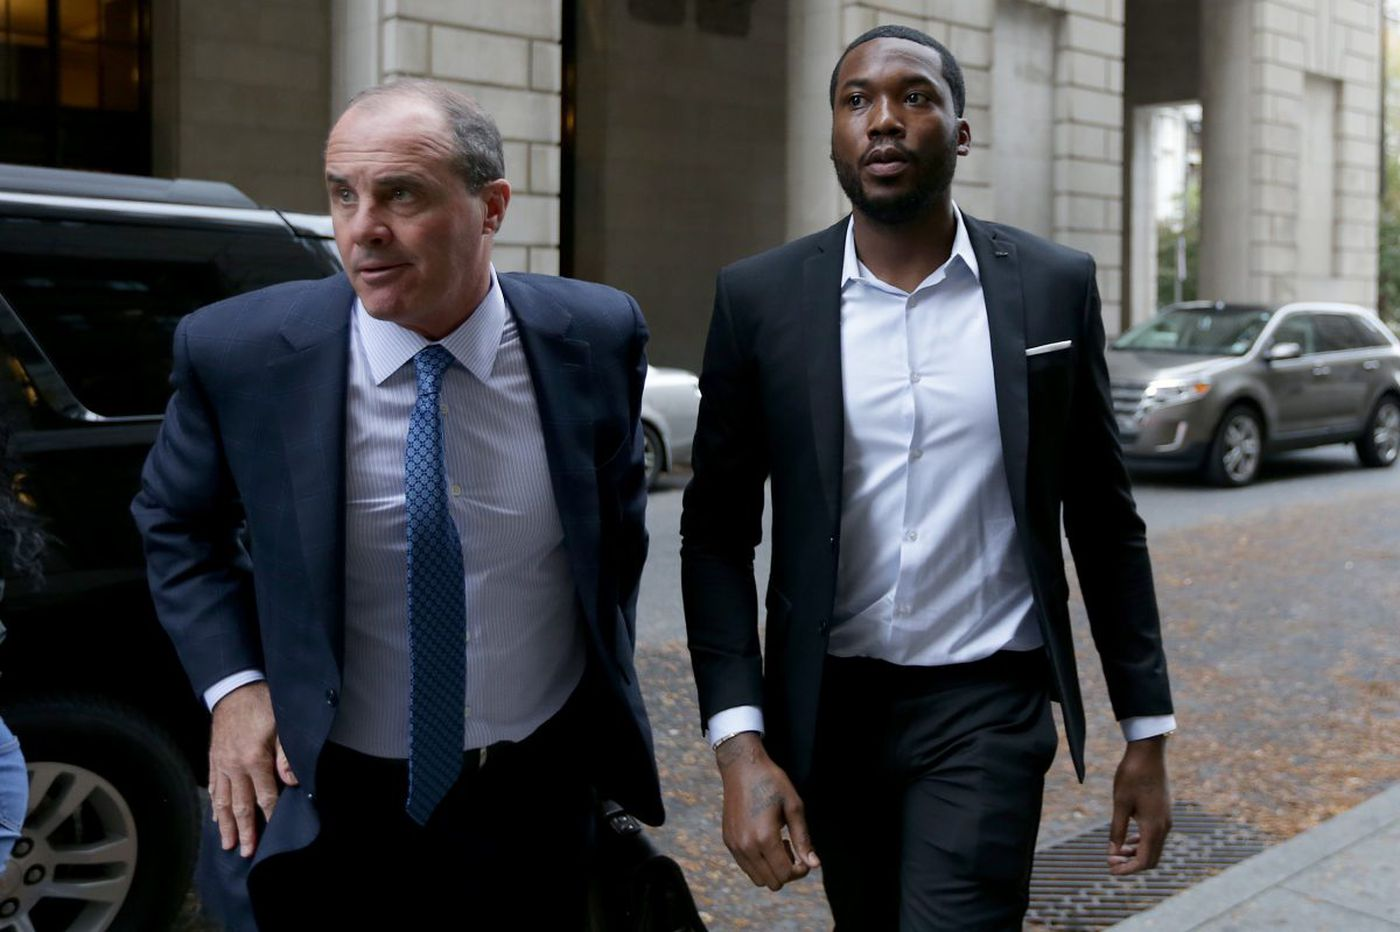 Philly DA's Office: Meek Mill should get a new trial